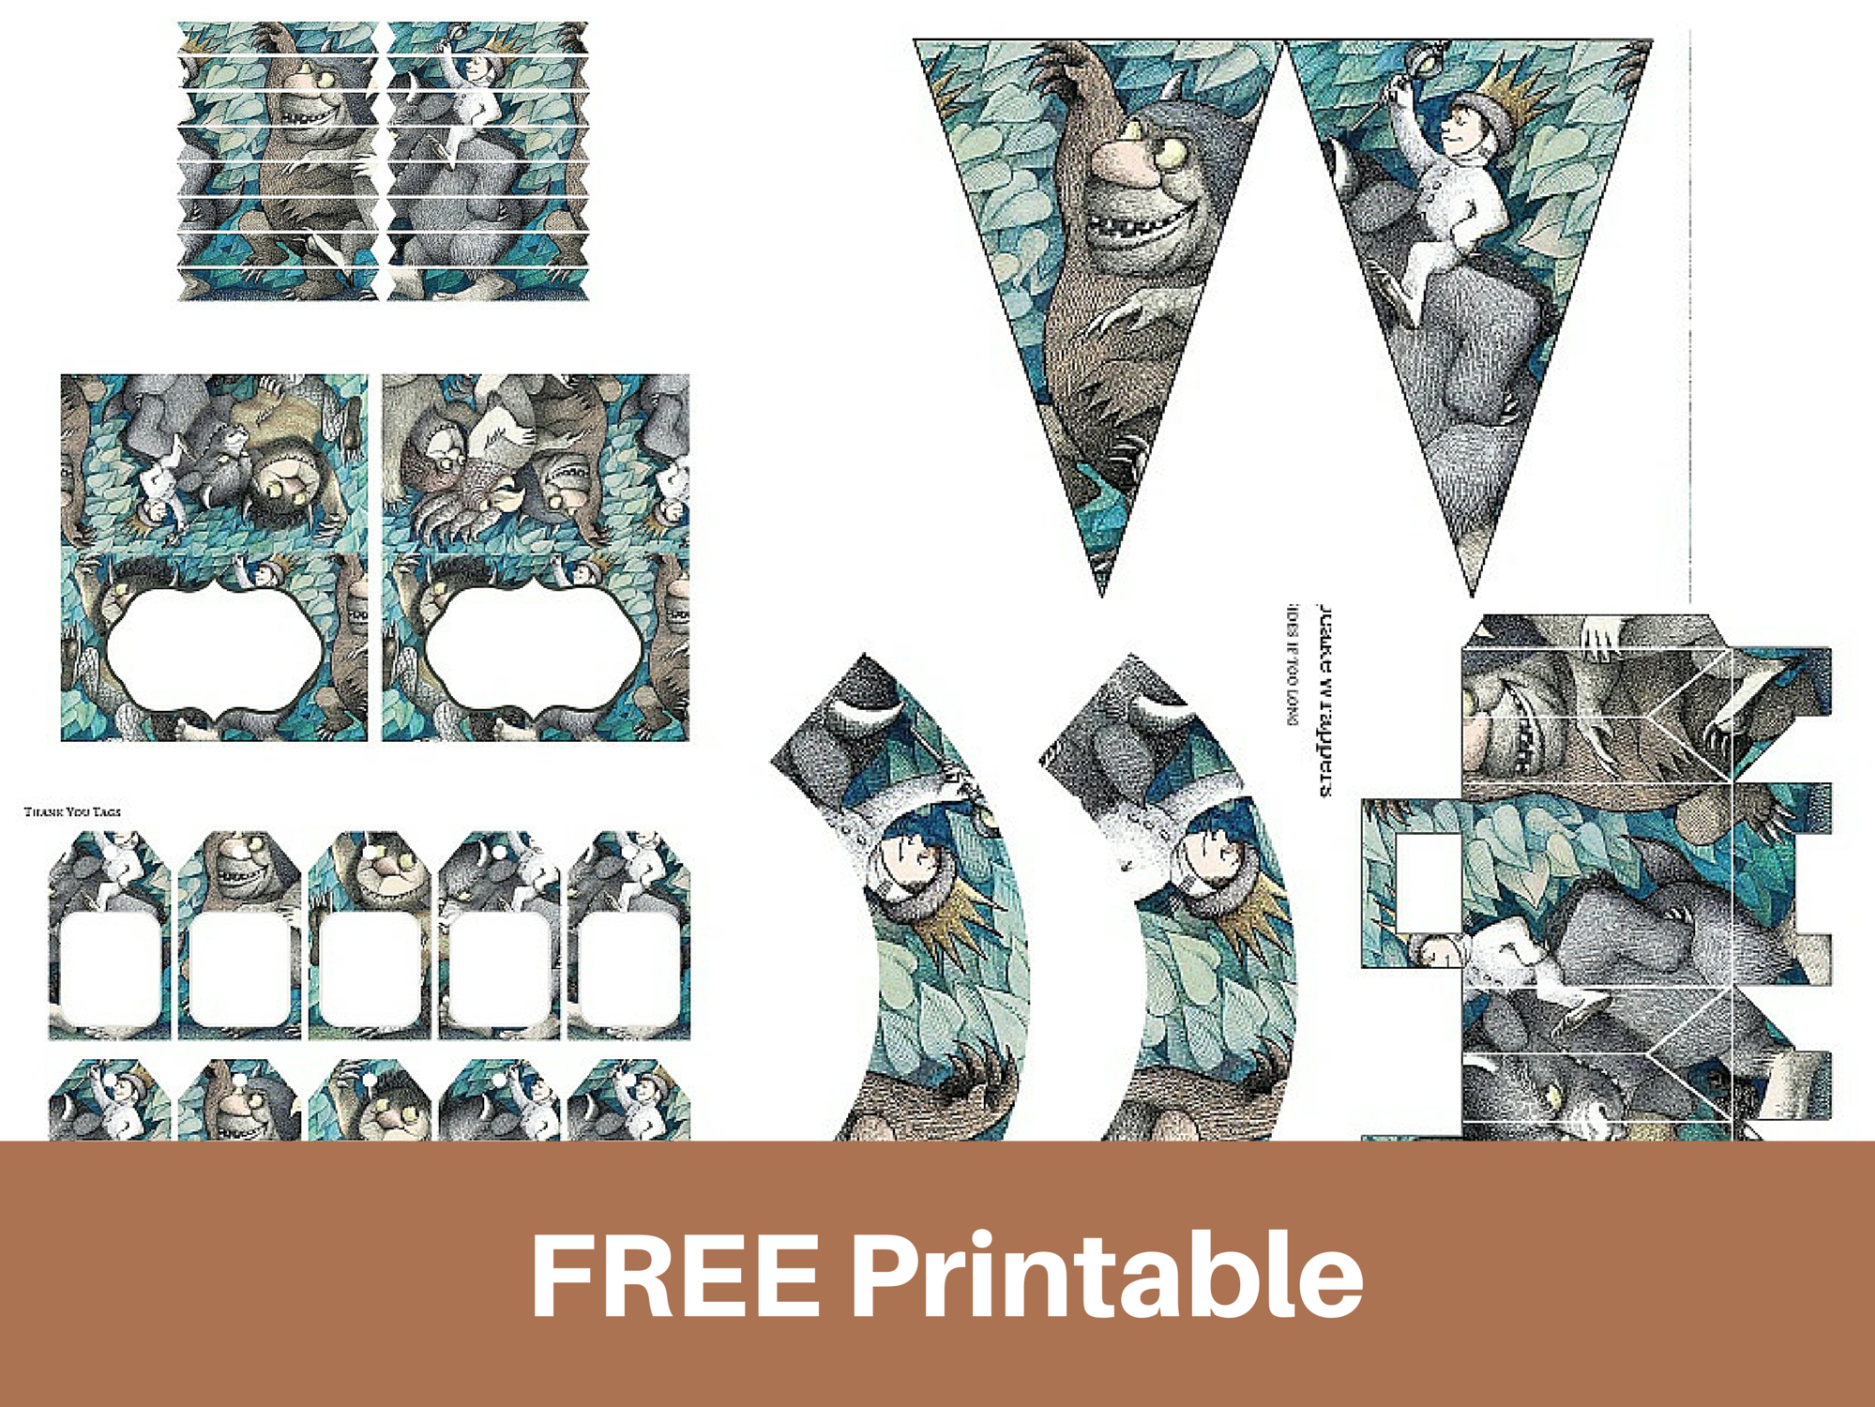 Free Printable Where The Wild Things Are